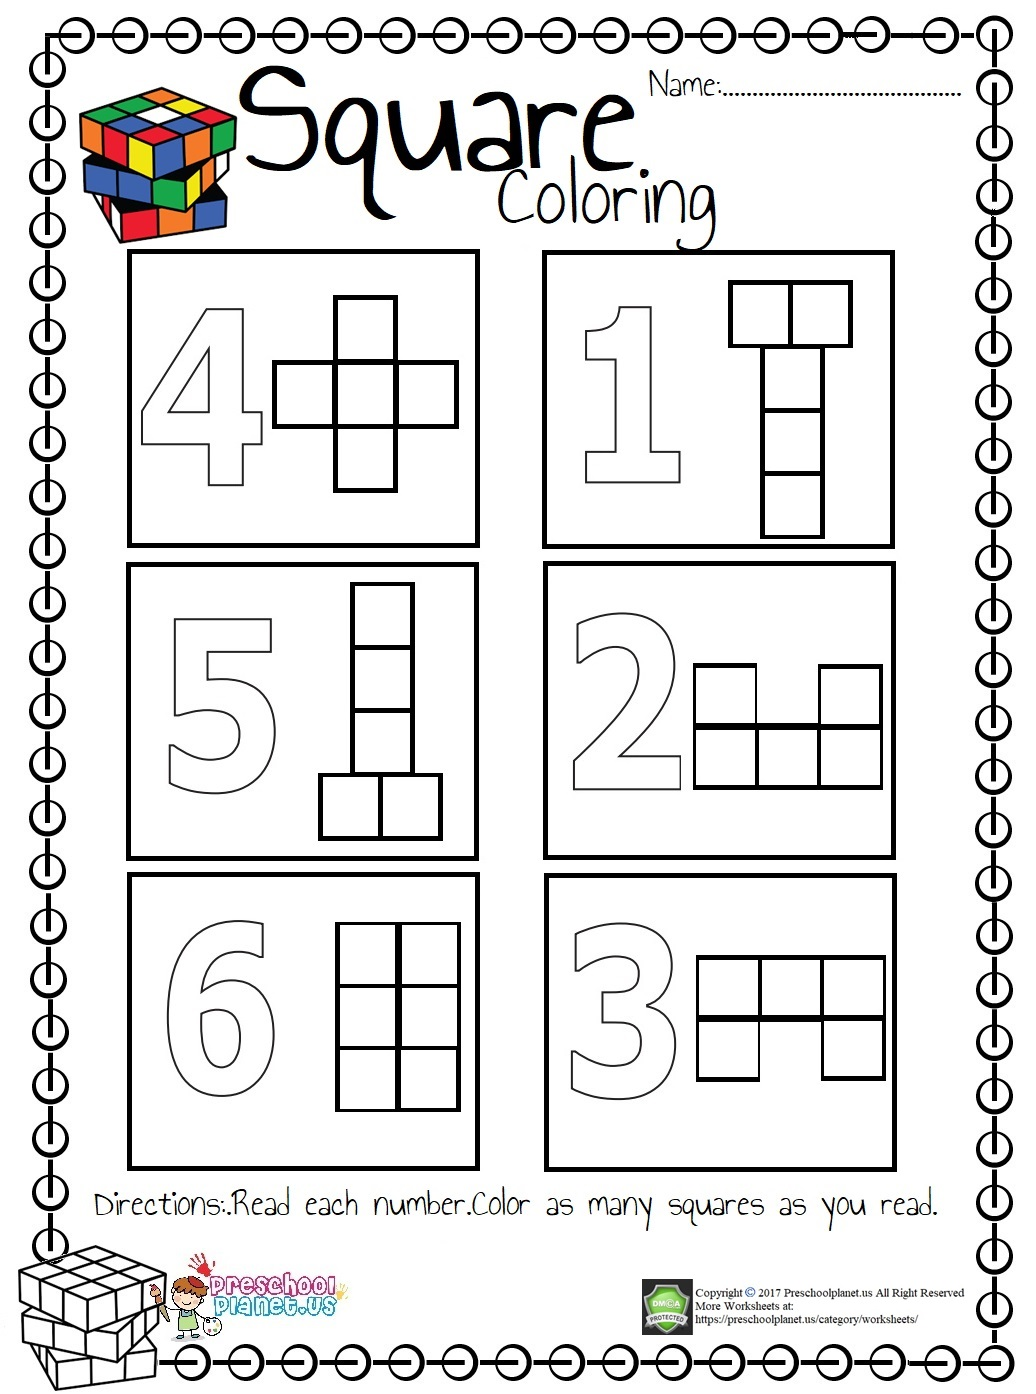 Easter Egg Basket Trace Line Worksheet Preschoolplanet